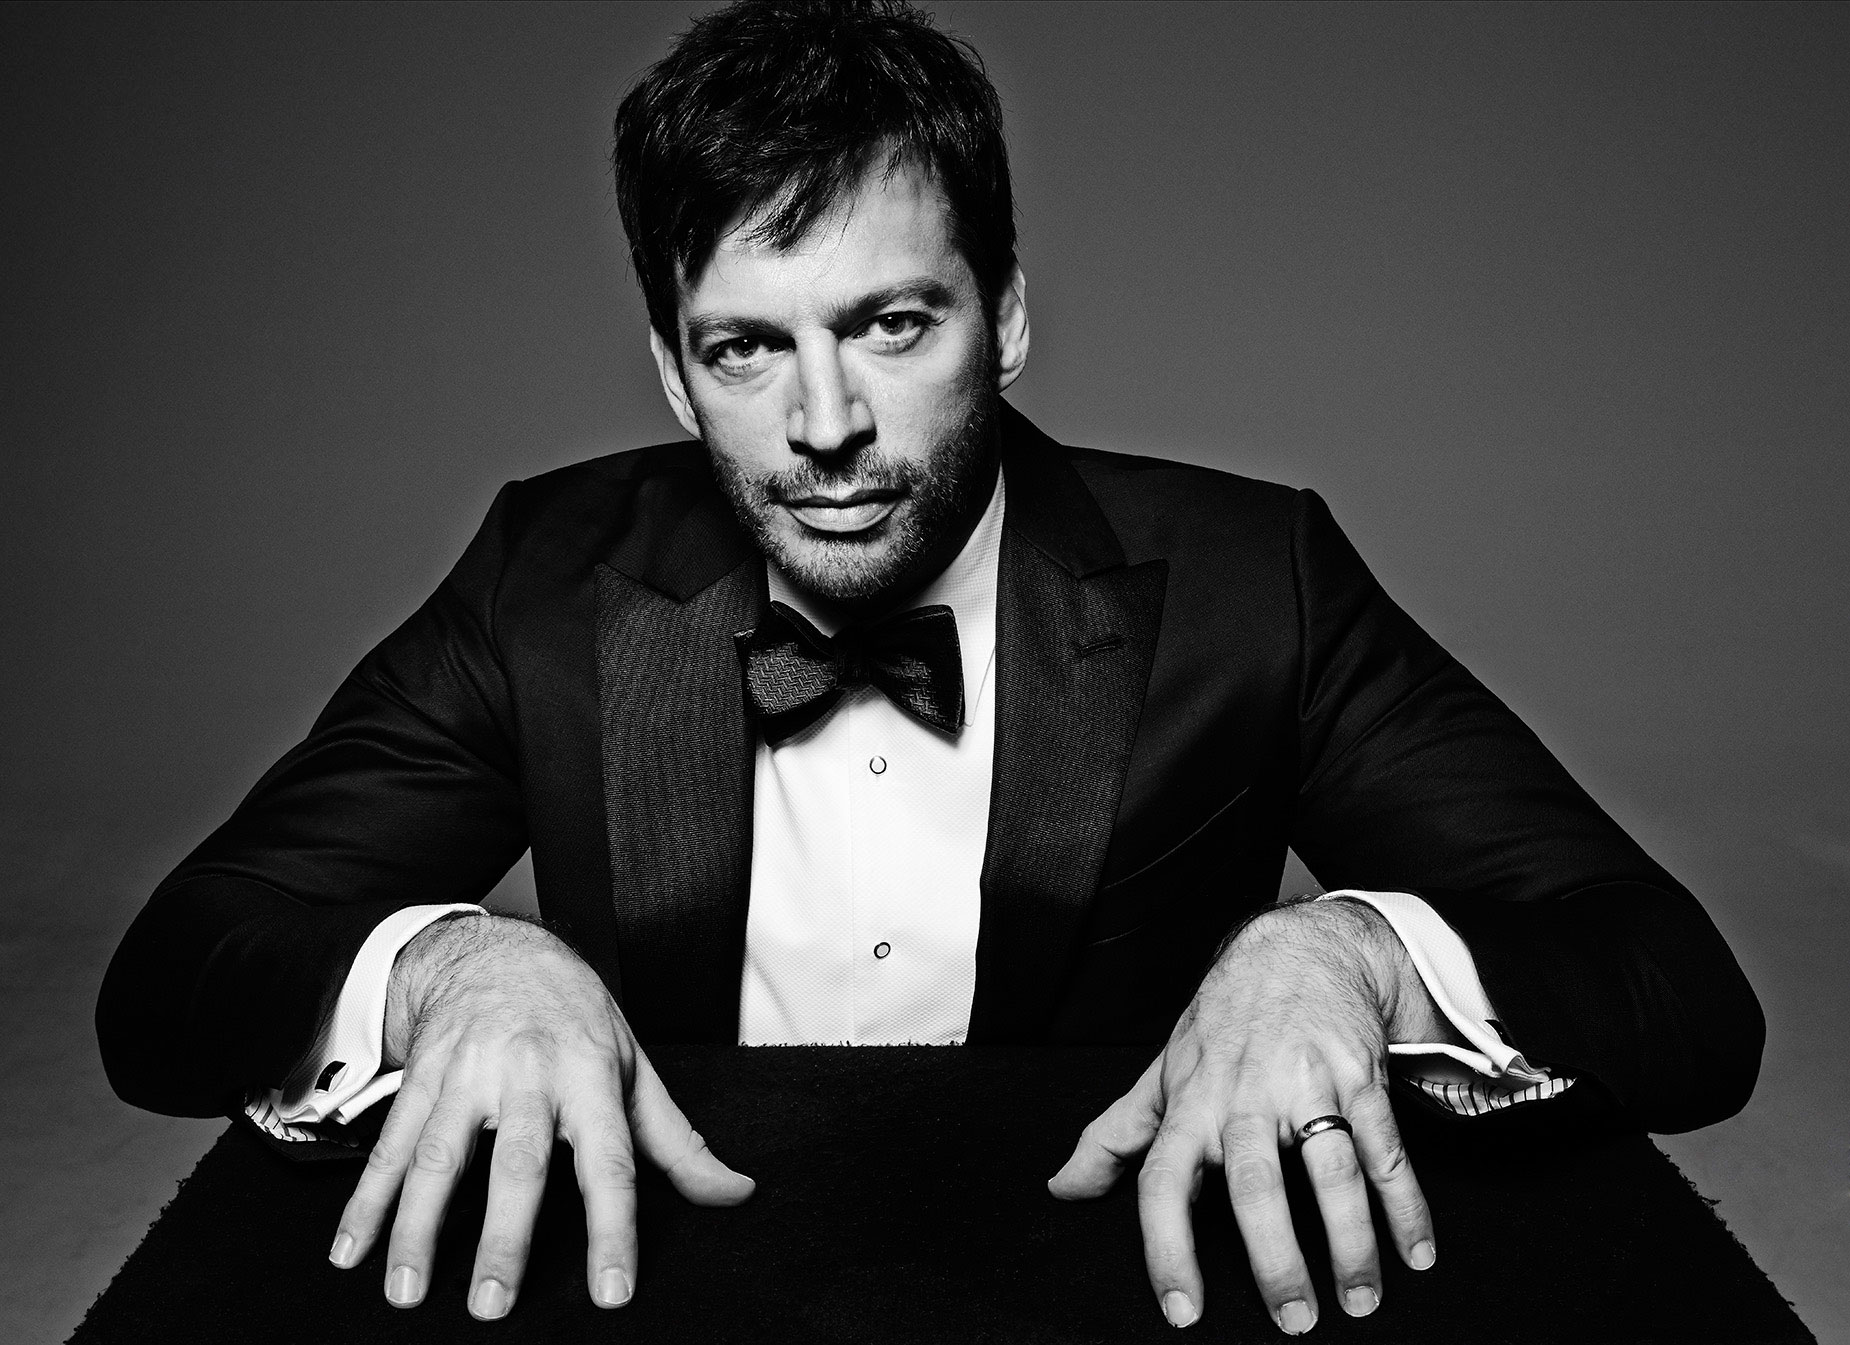 Harry_Connick_Jr_David_Needleman_08_145